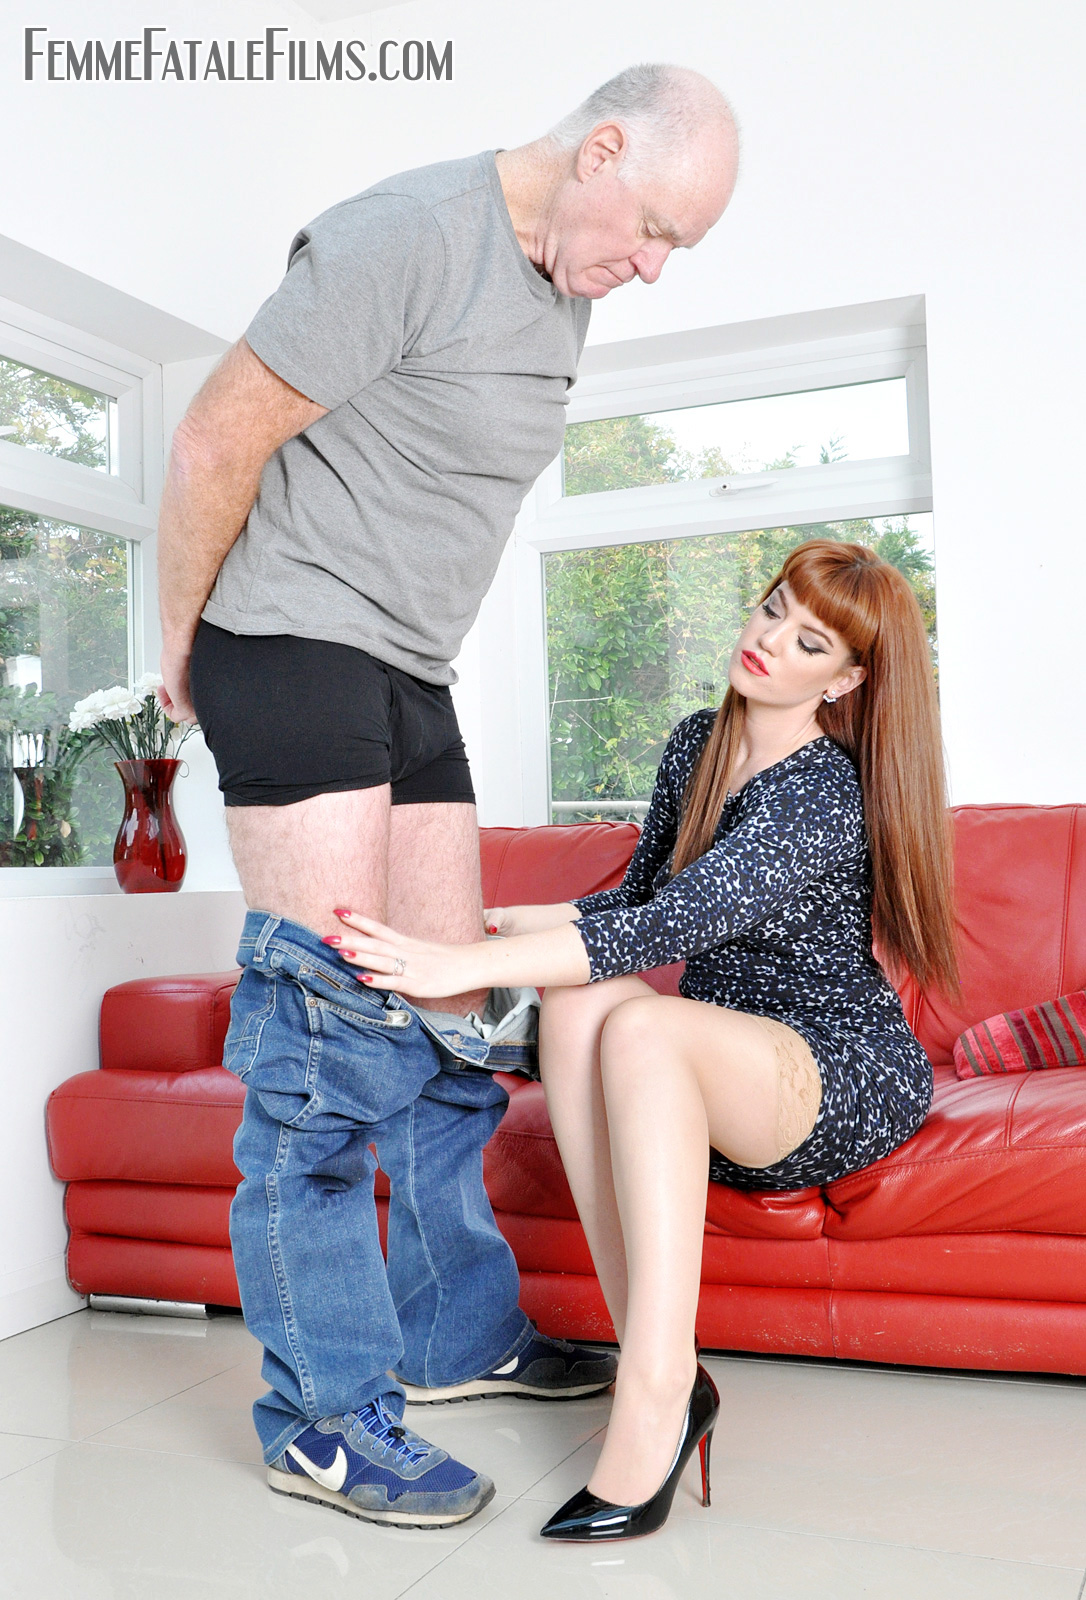 Miss Zoe prepares to administer a sound bare bottom spanking punishment